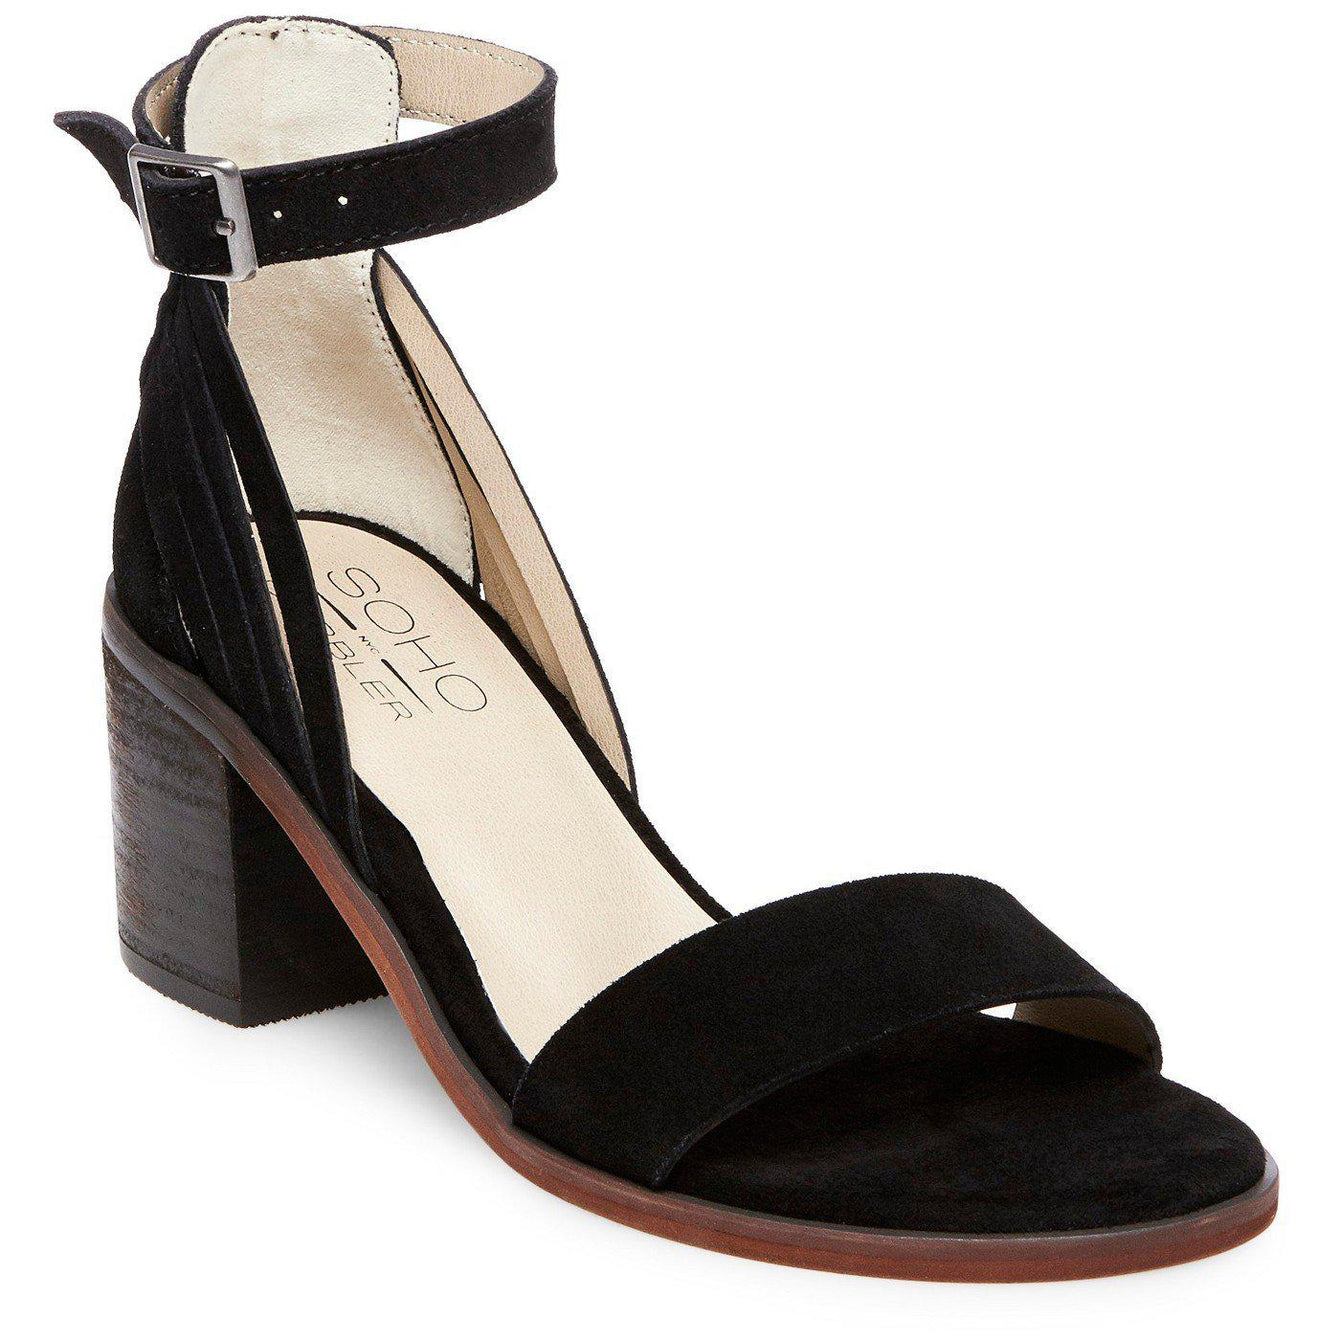 Soho Cobbler Serene Suede Quarter Strap Sandals 9.5 / Black Soho  kick-it-shoe-outlet.myshopify.com Kick-it Shoe Outlet Shoes Cheap